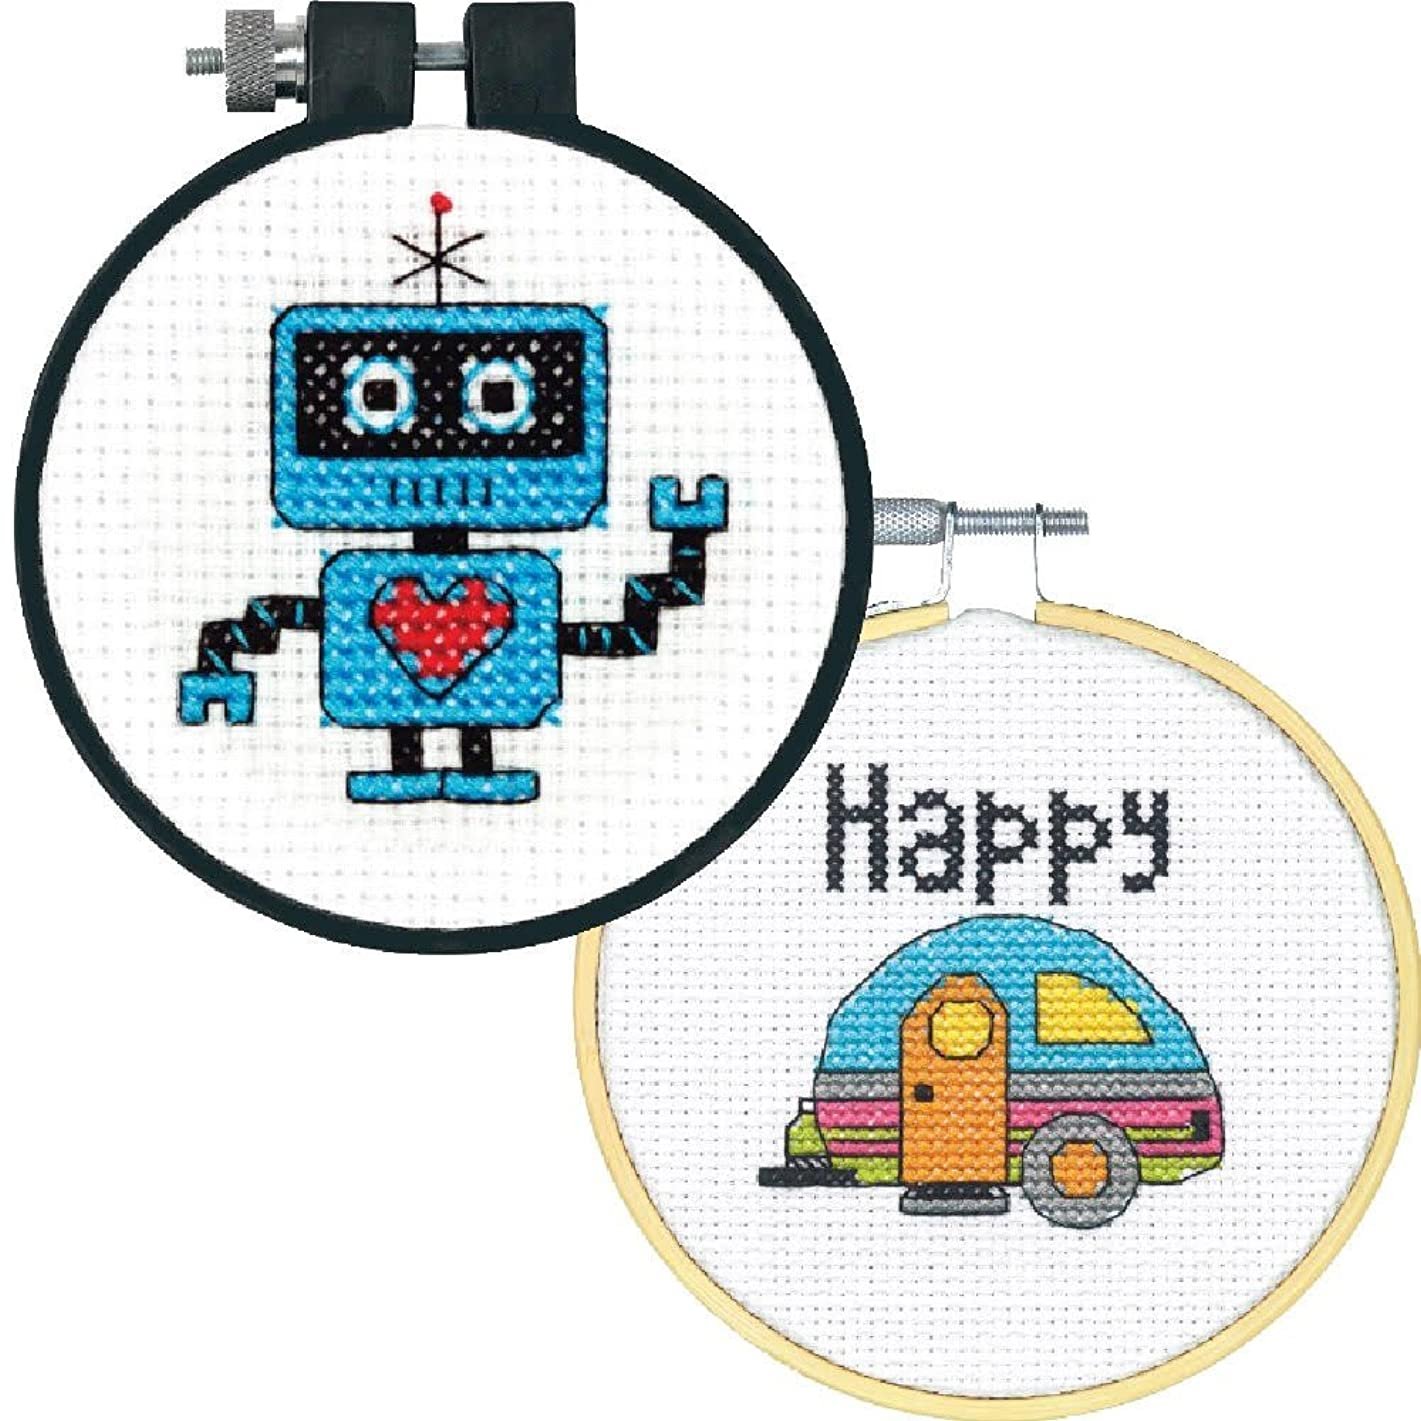 2 Item Learn-A-Craft Cross Stitch Kits Bundle: Robot and Happy Camper (Each 3